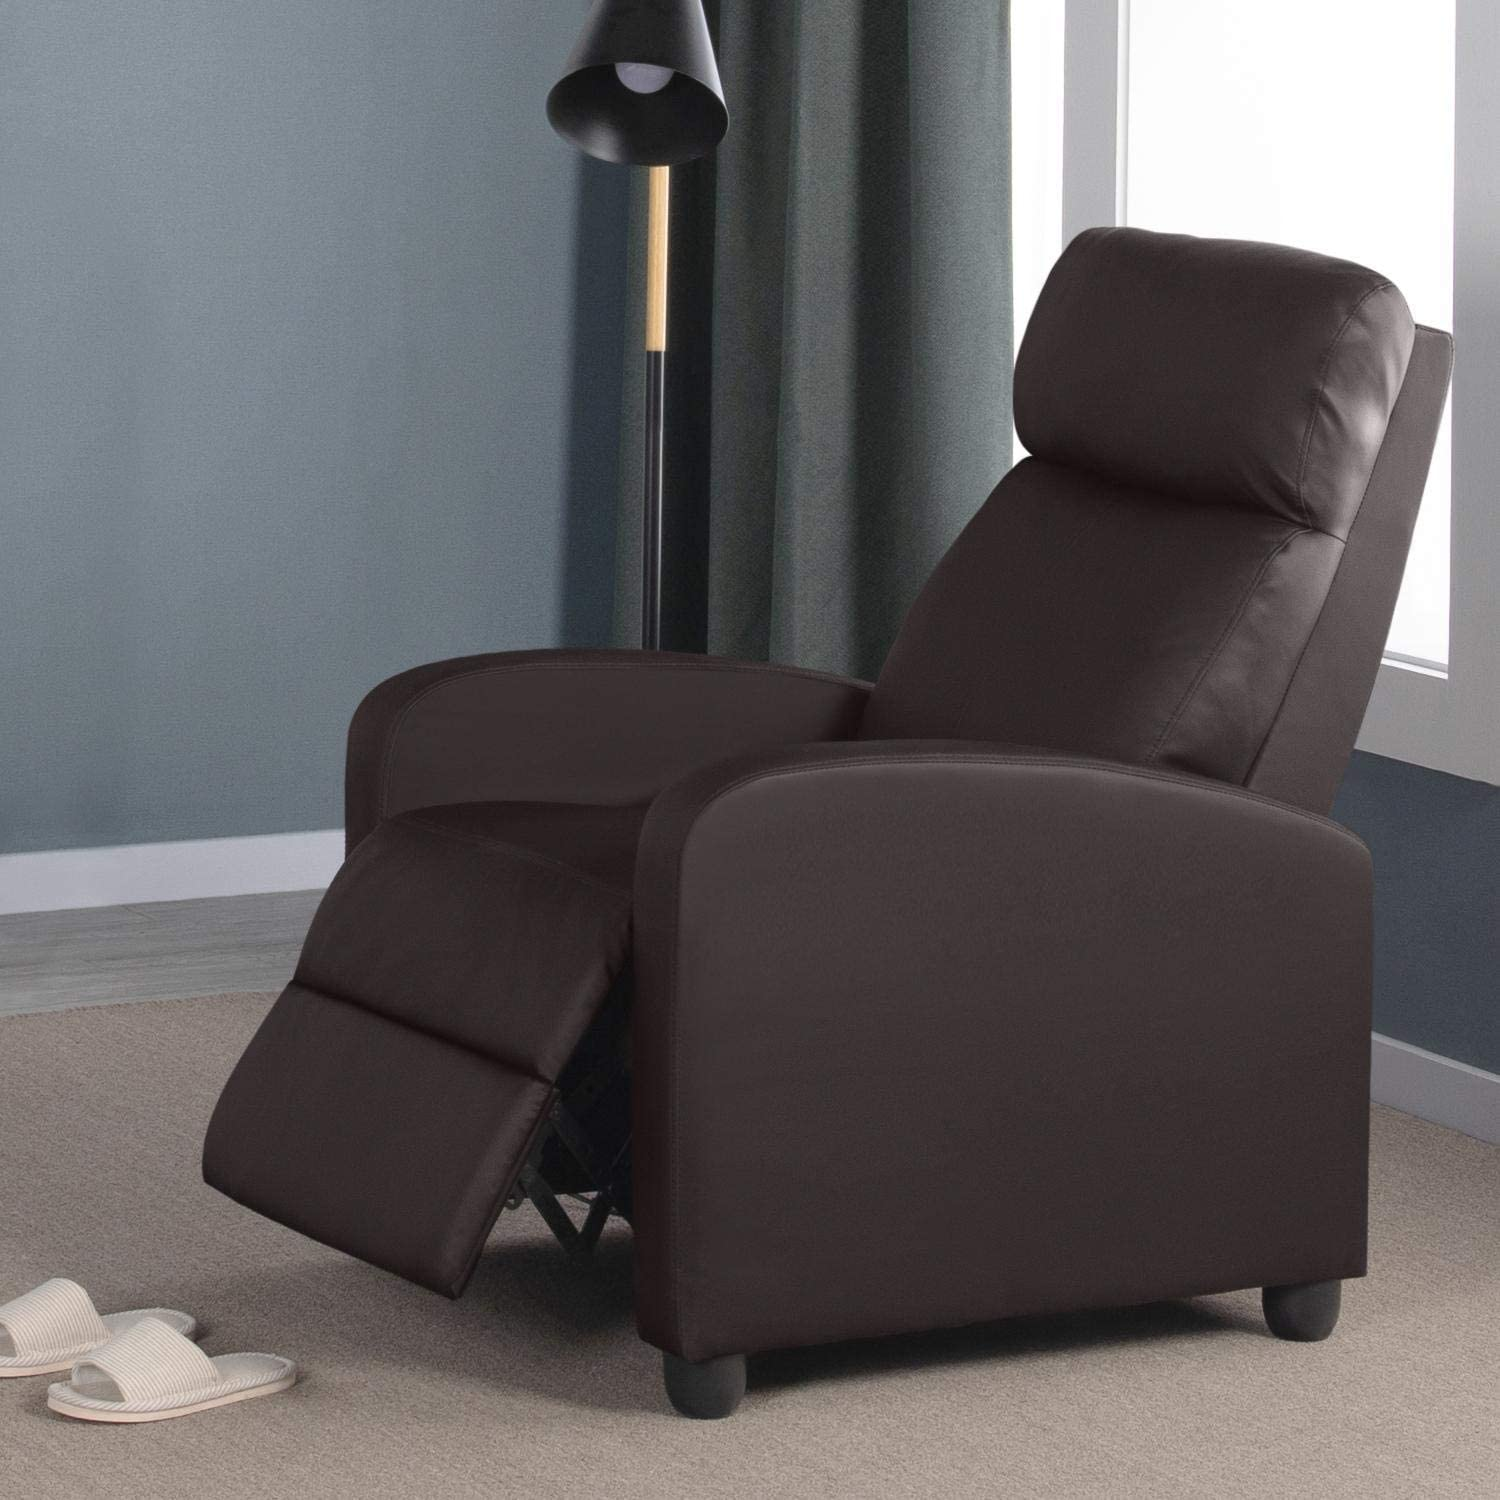 - Yaheetech Recliner Armchair Single Padded Seat PU Leather Sofa